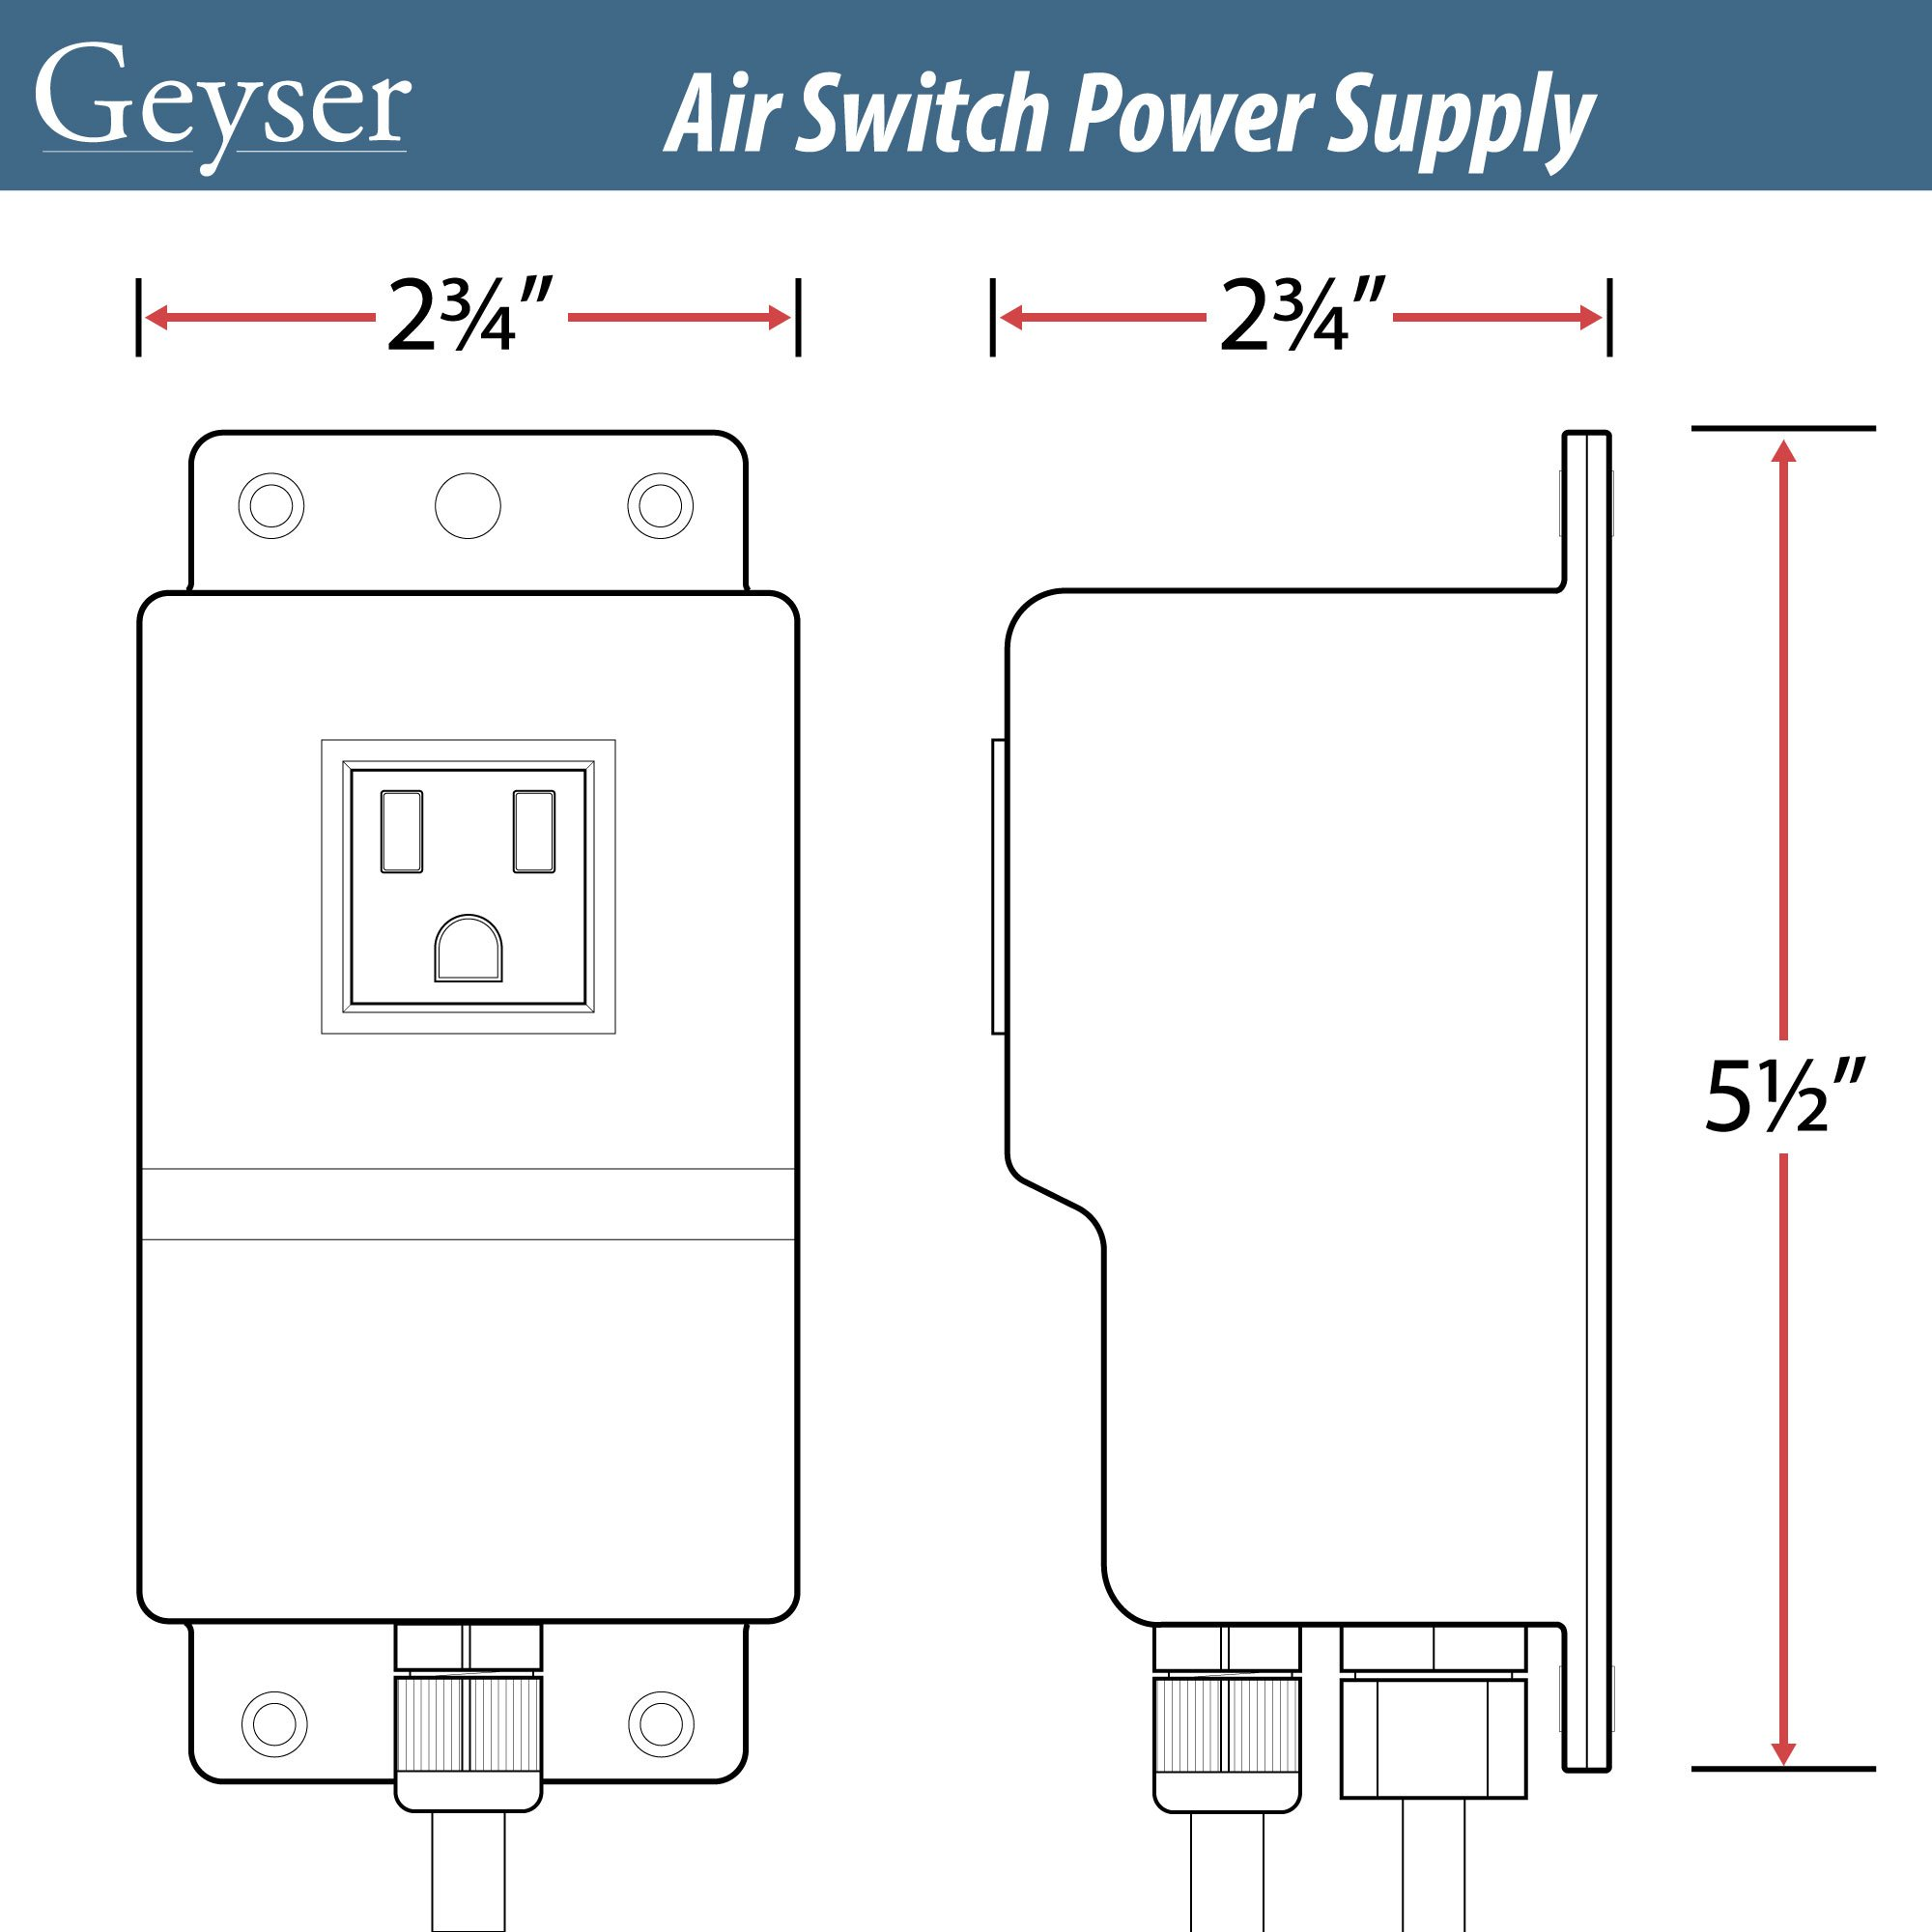 Geyser GA7, Air Swicth Control box by Geyser